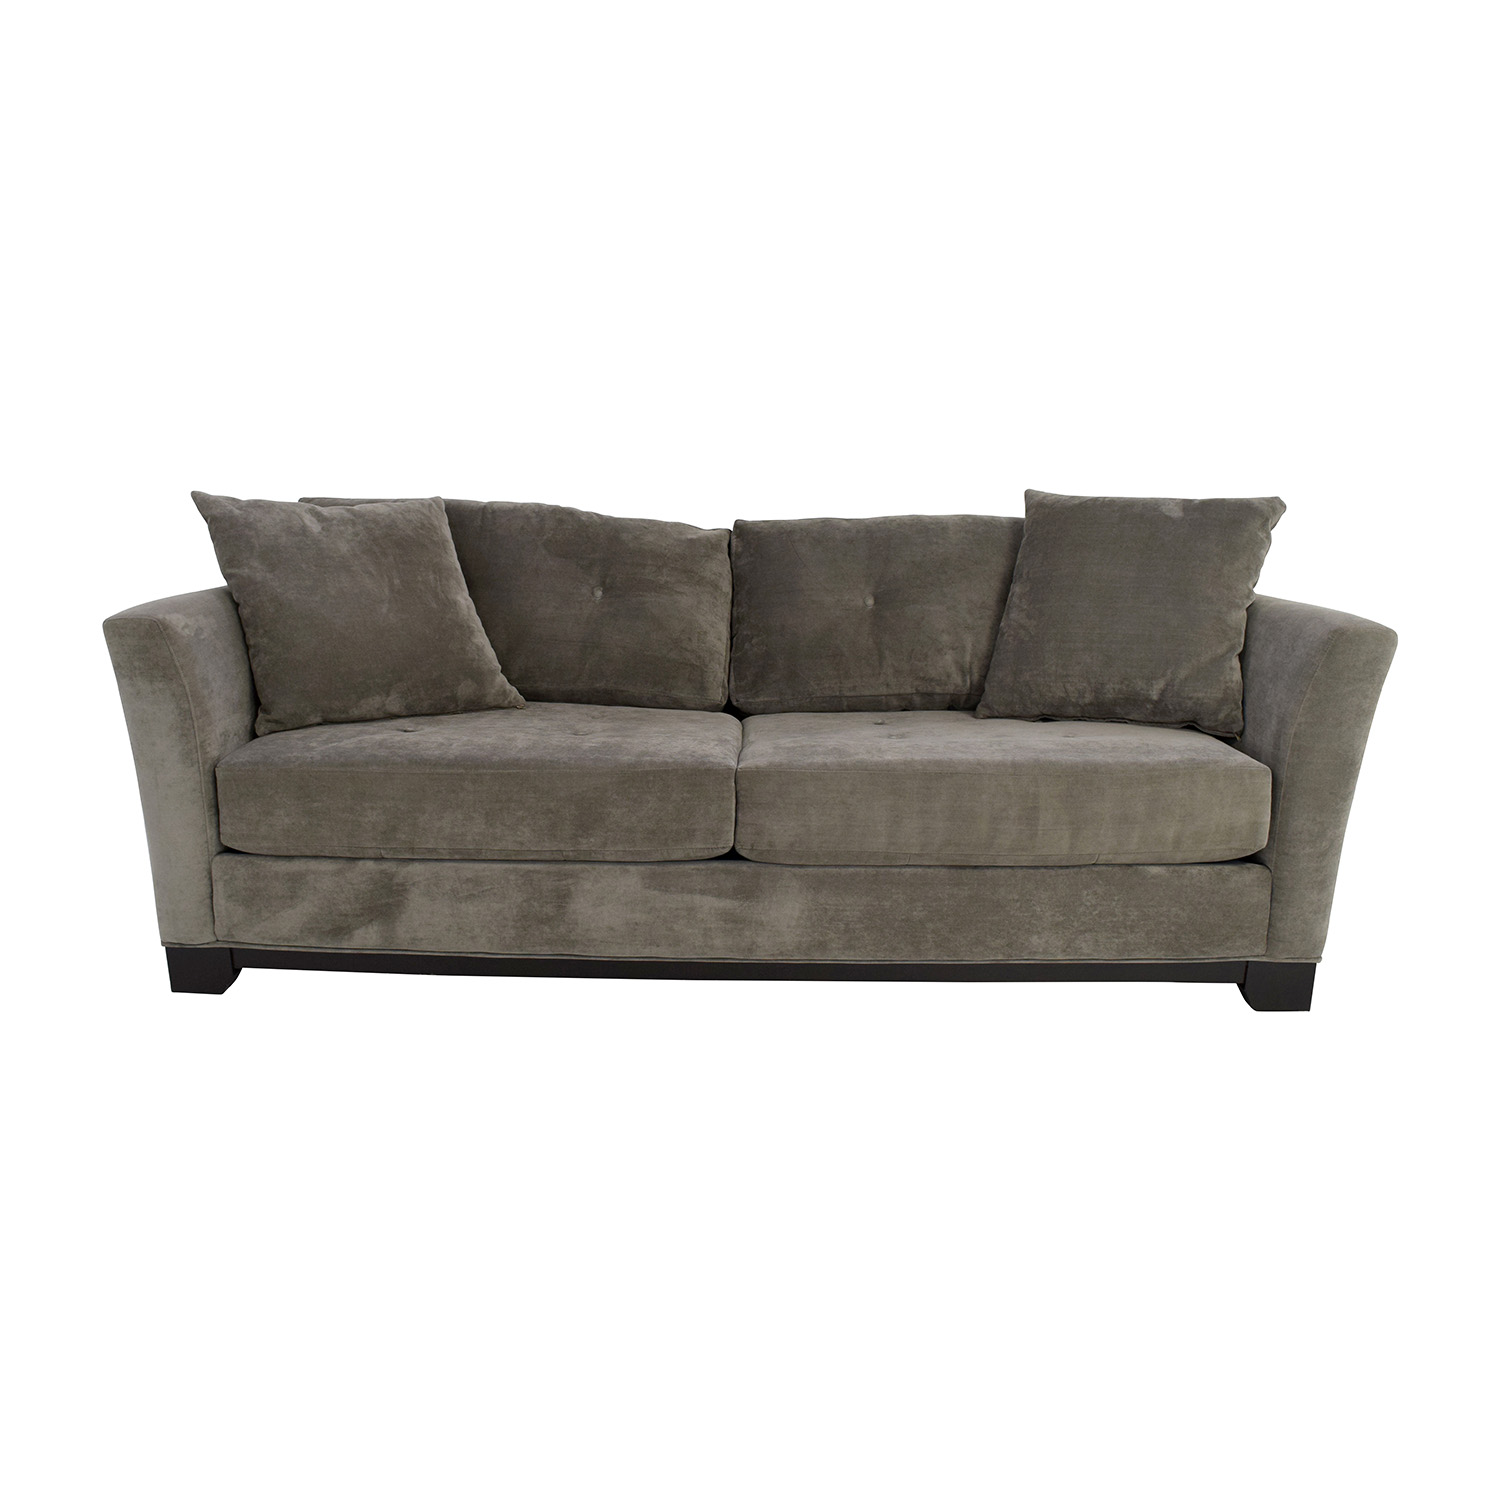 Macys Macys Grey Tufted Couch coupon